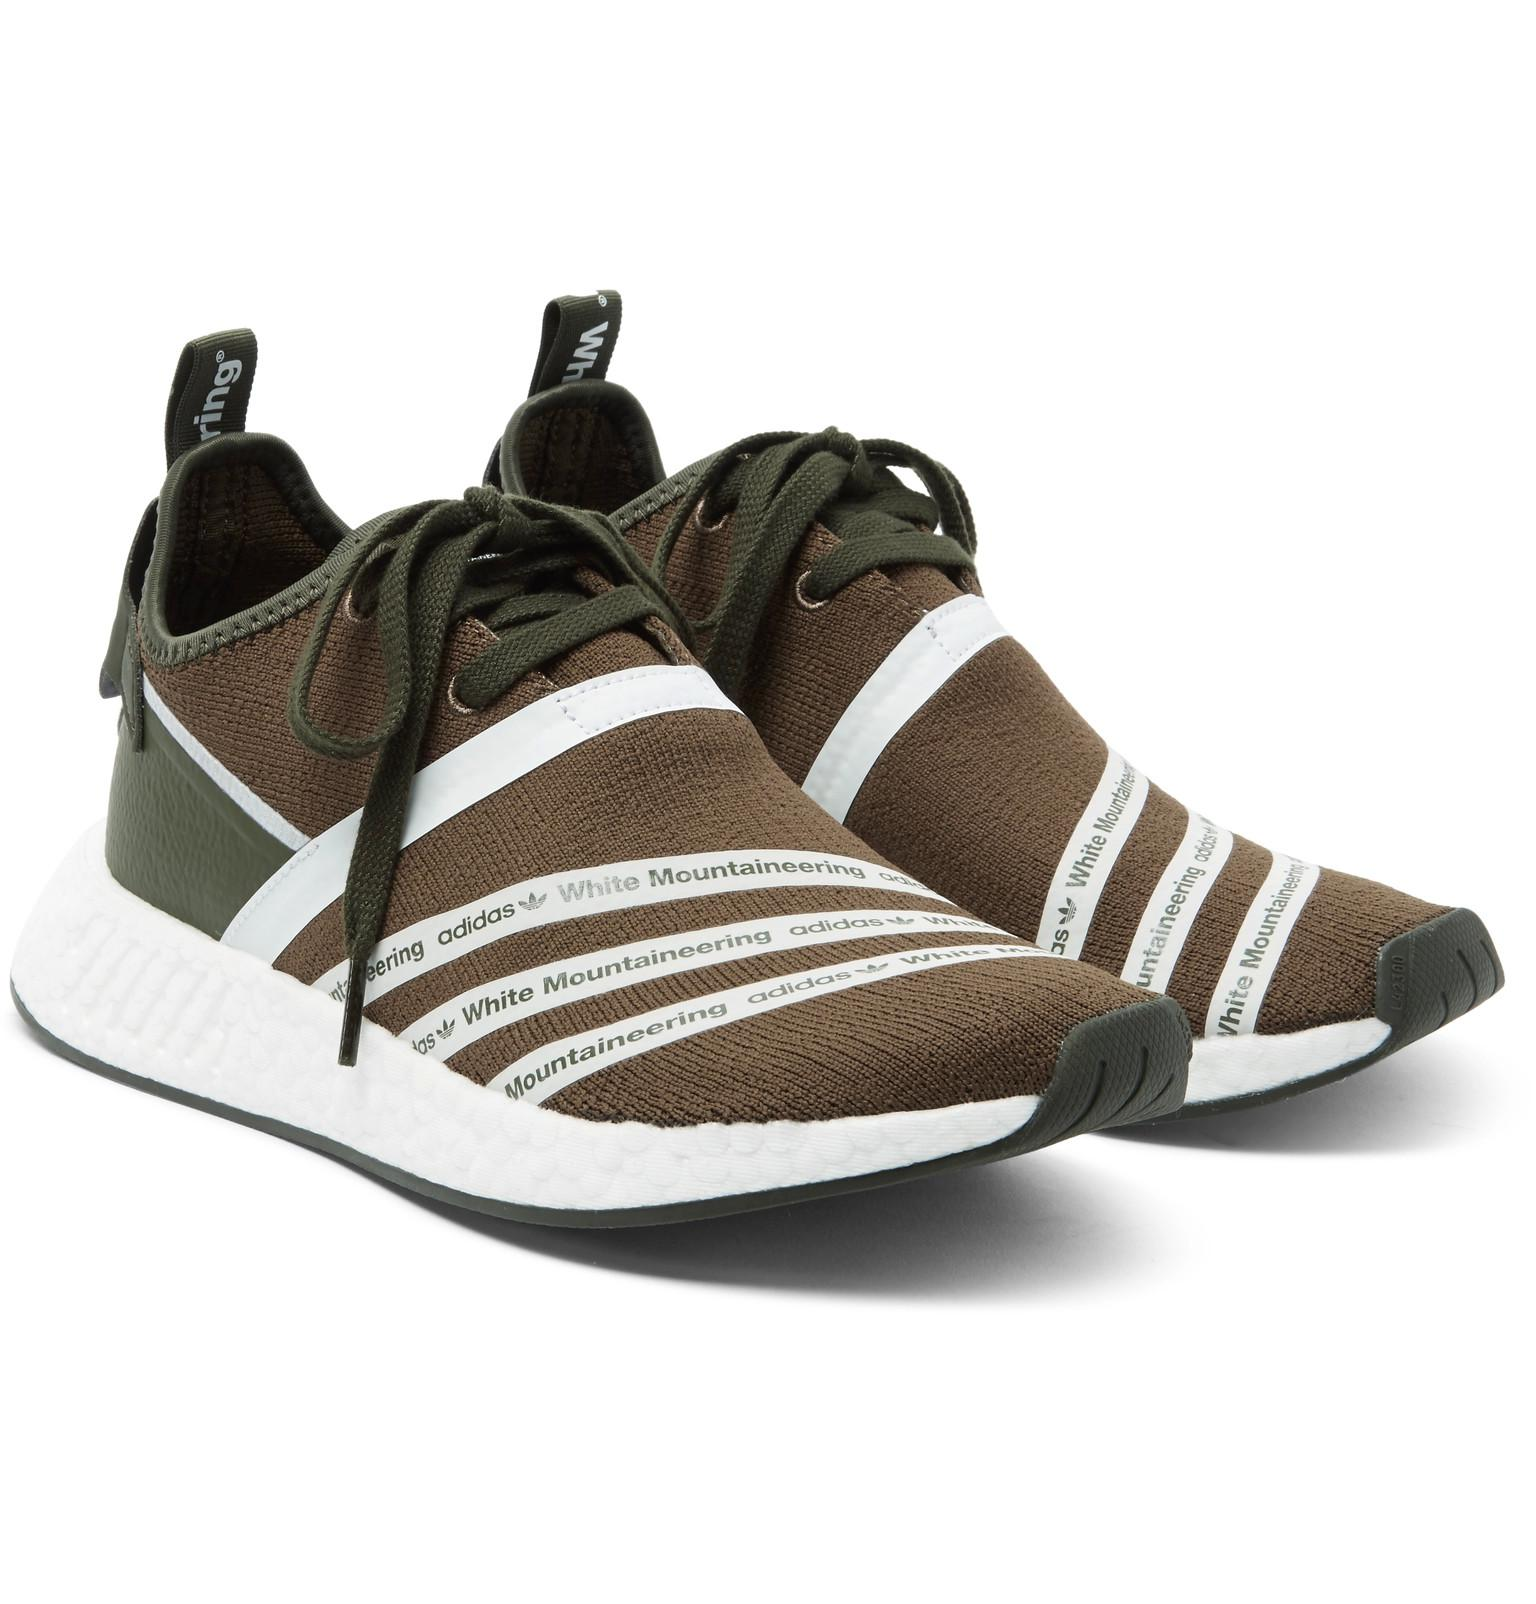 35d9116f7 adidas Originals White Mountaineering Nmd R2 Primeknit Sneakers for ...